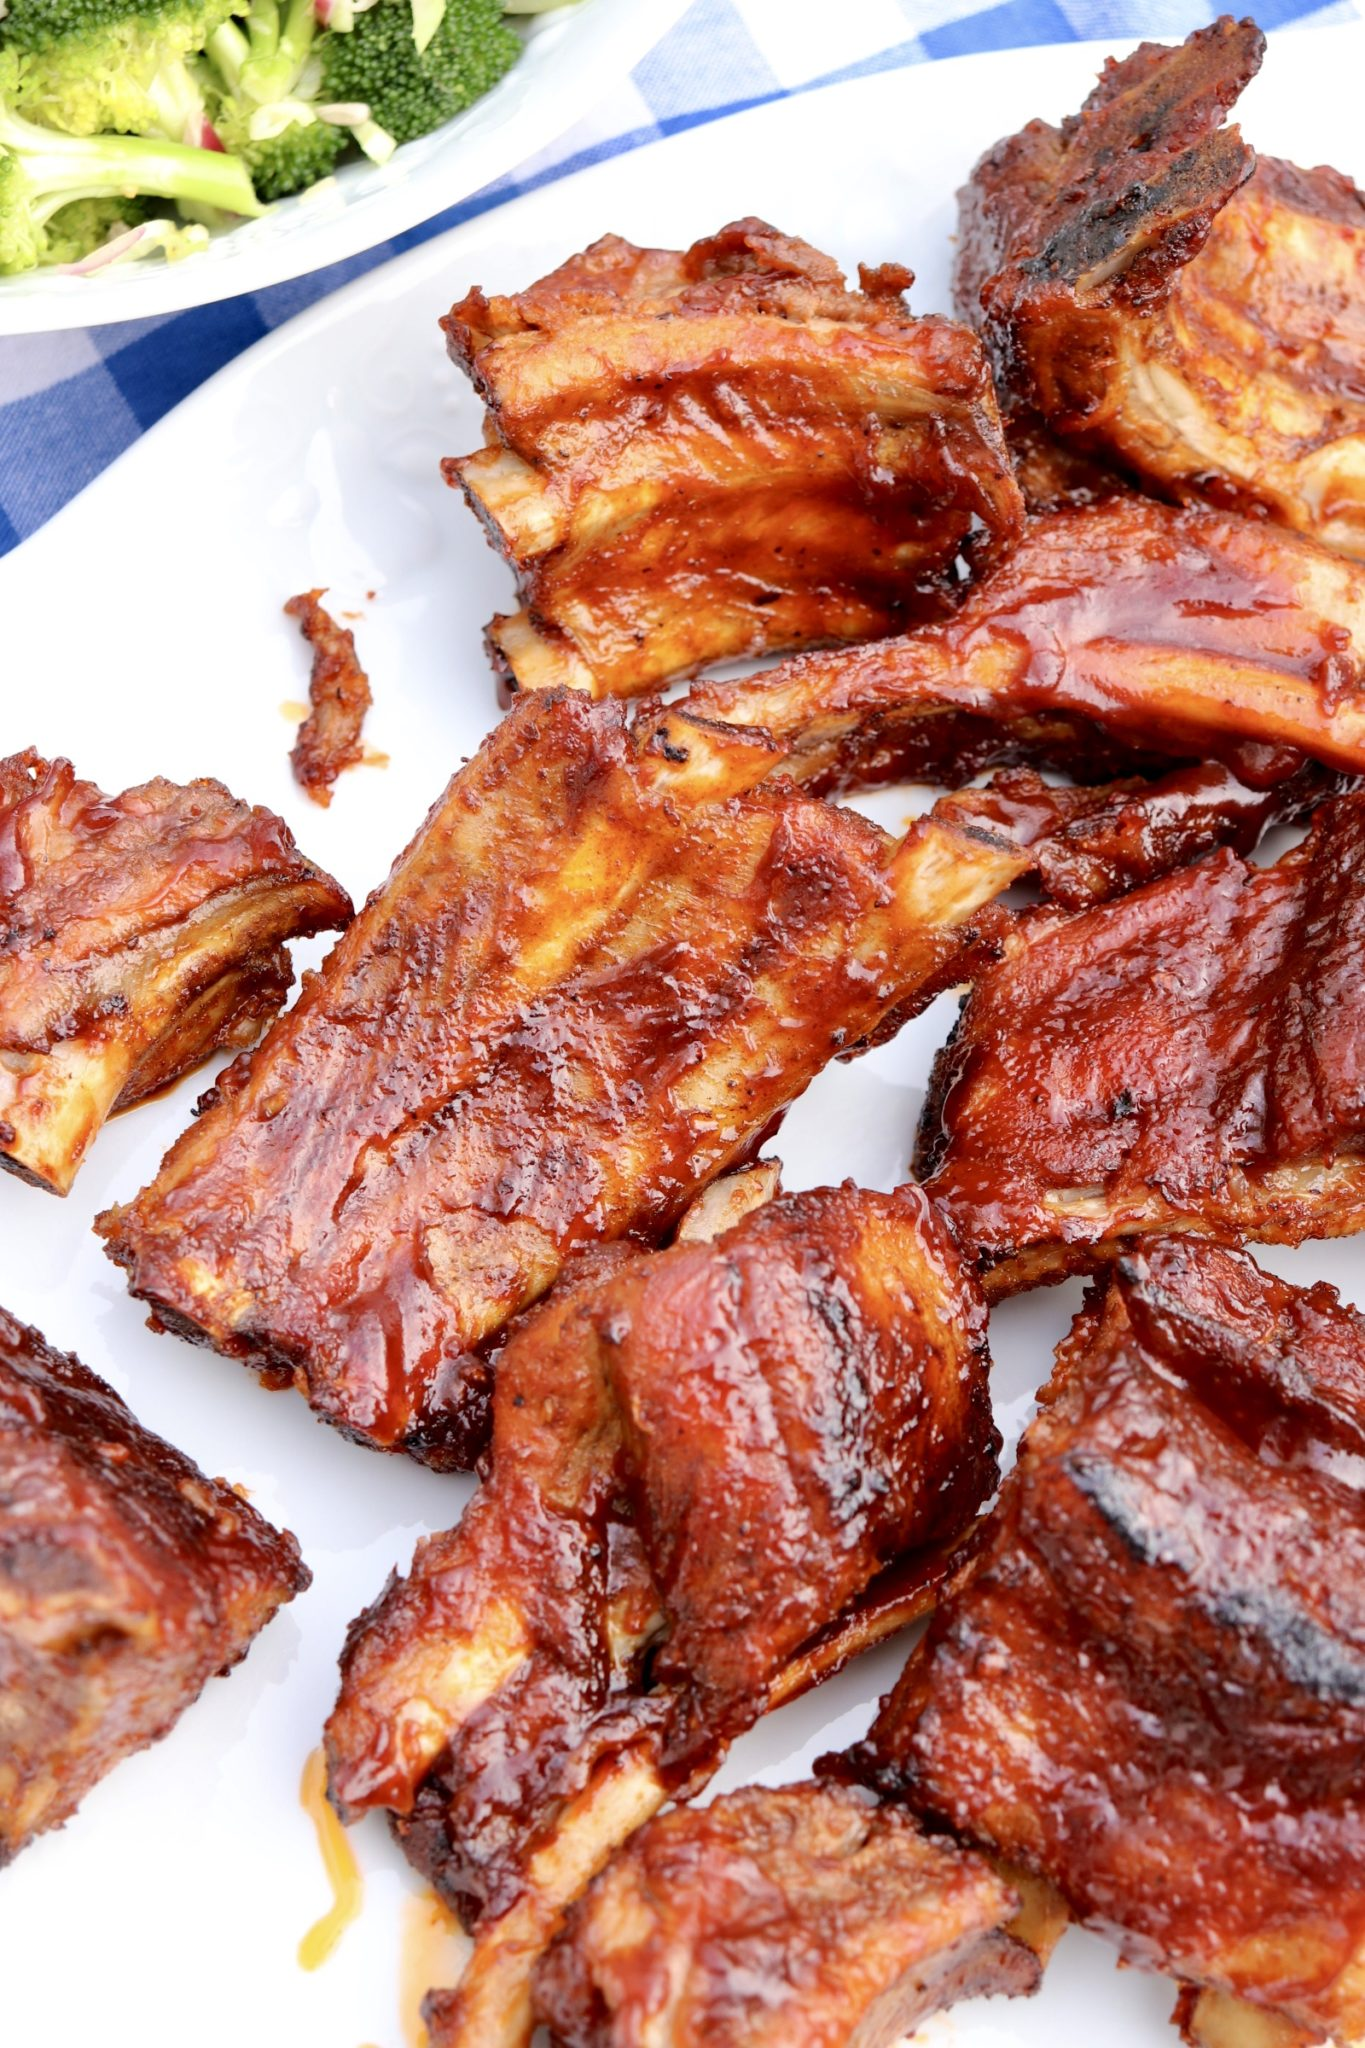 Oven Baked BBQ Ribs-Melt-in-your mouth ribs with crispy edges are a breeze to prepare  with this easy recipe!